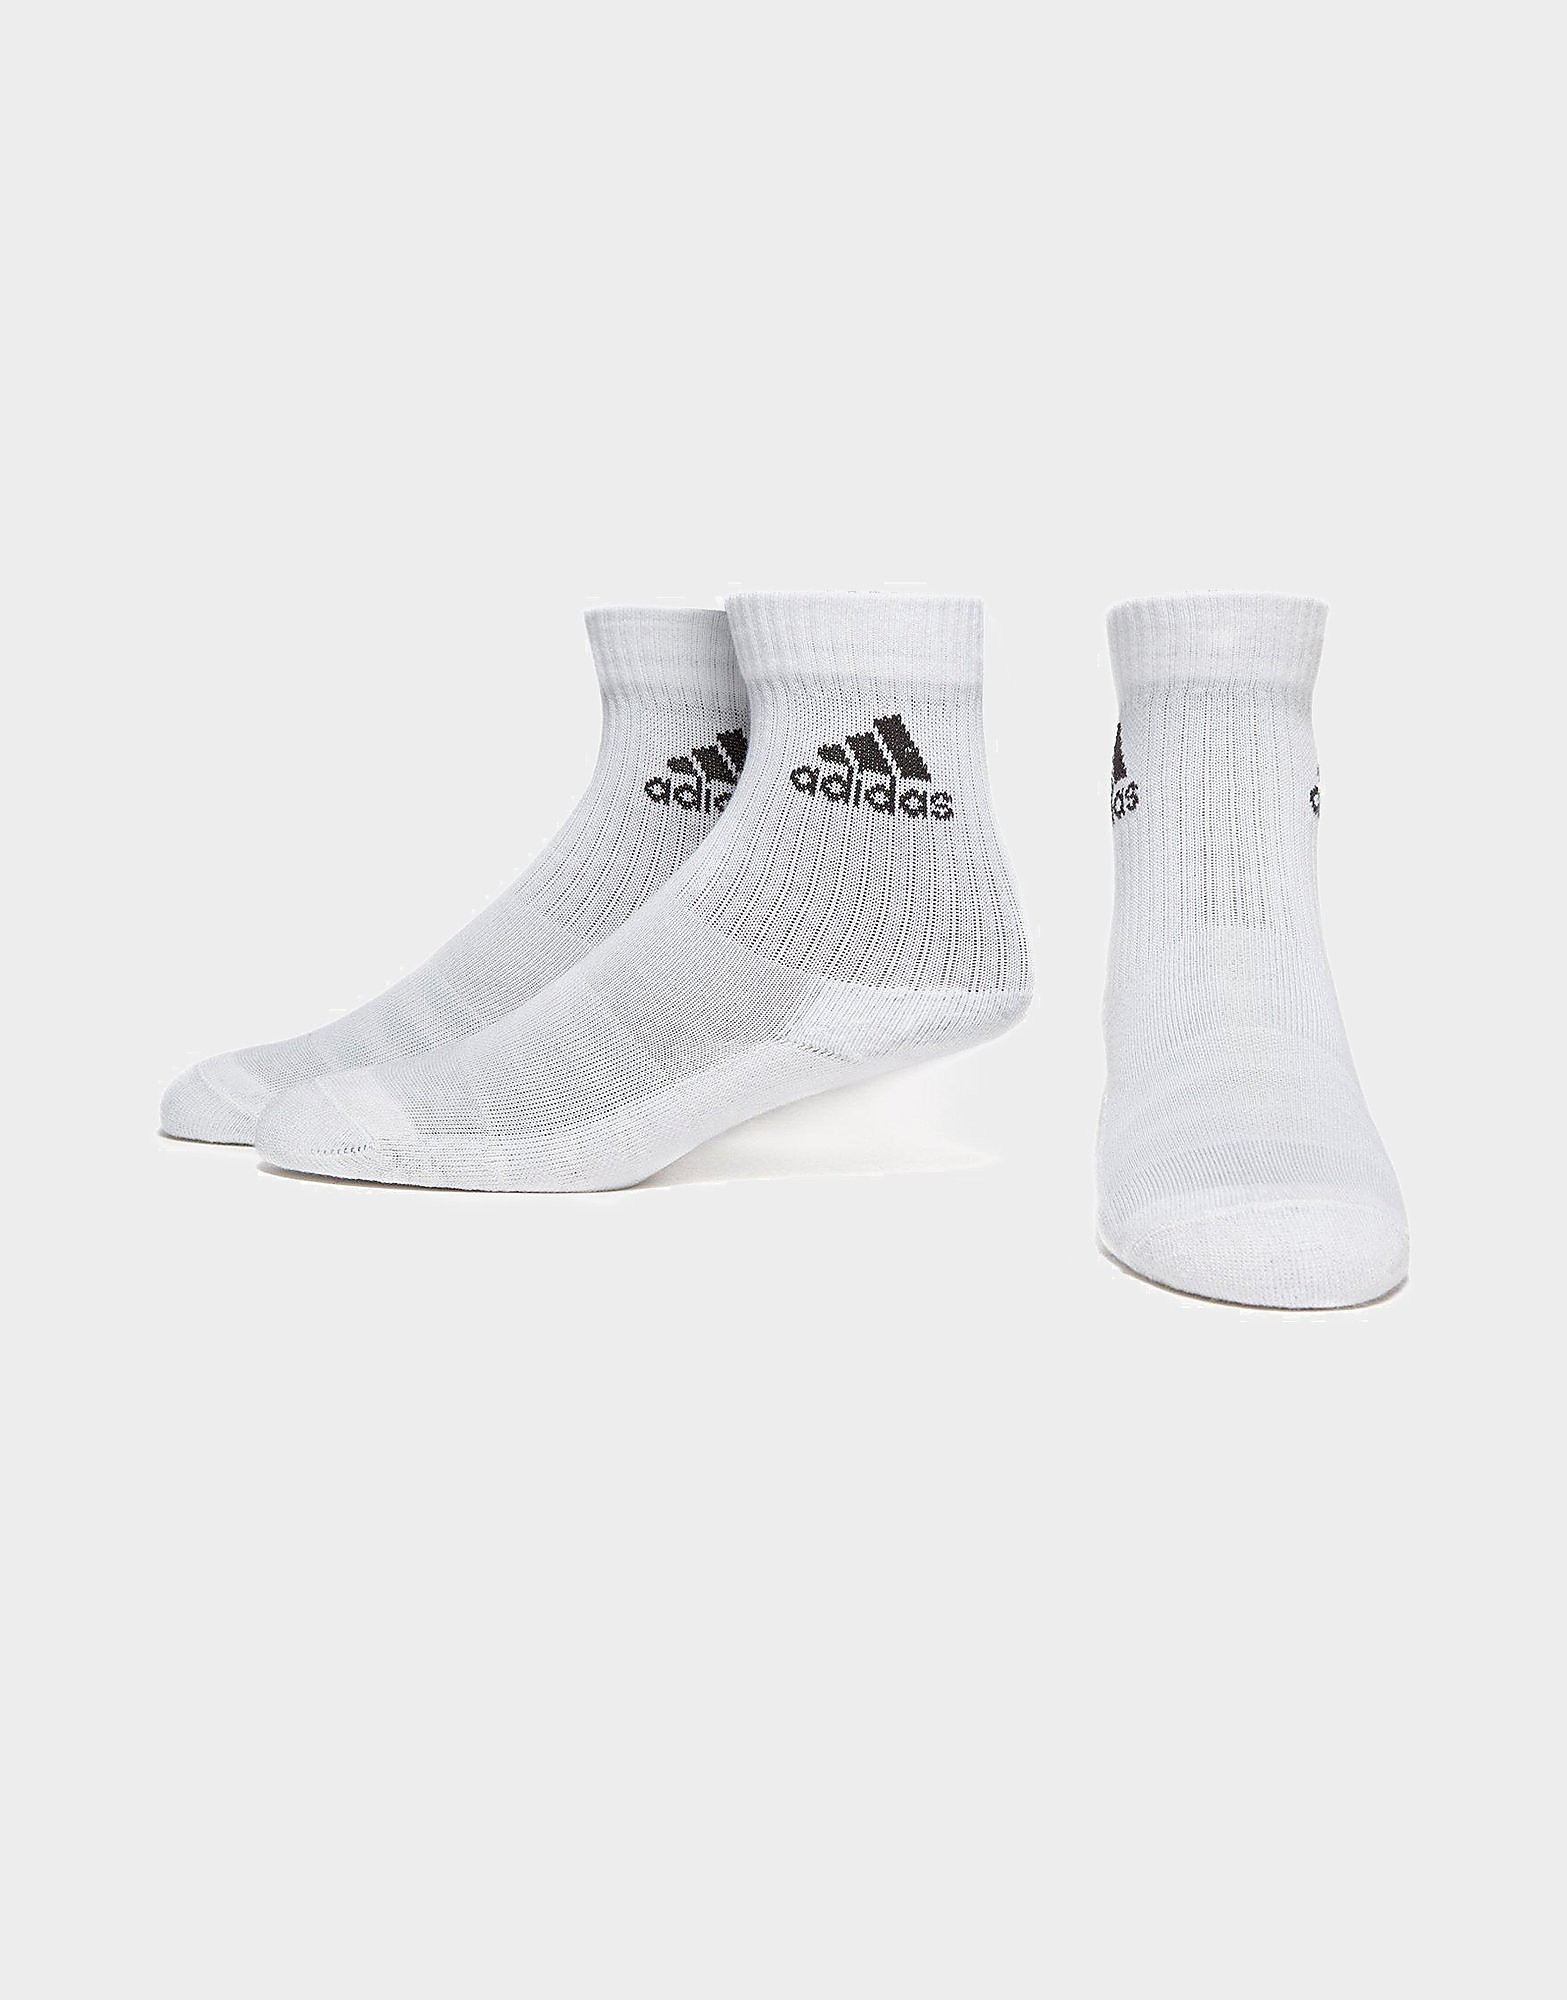 adidas 3-Stripes Performance Crew 3 Pack Socks